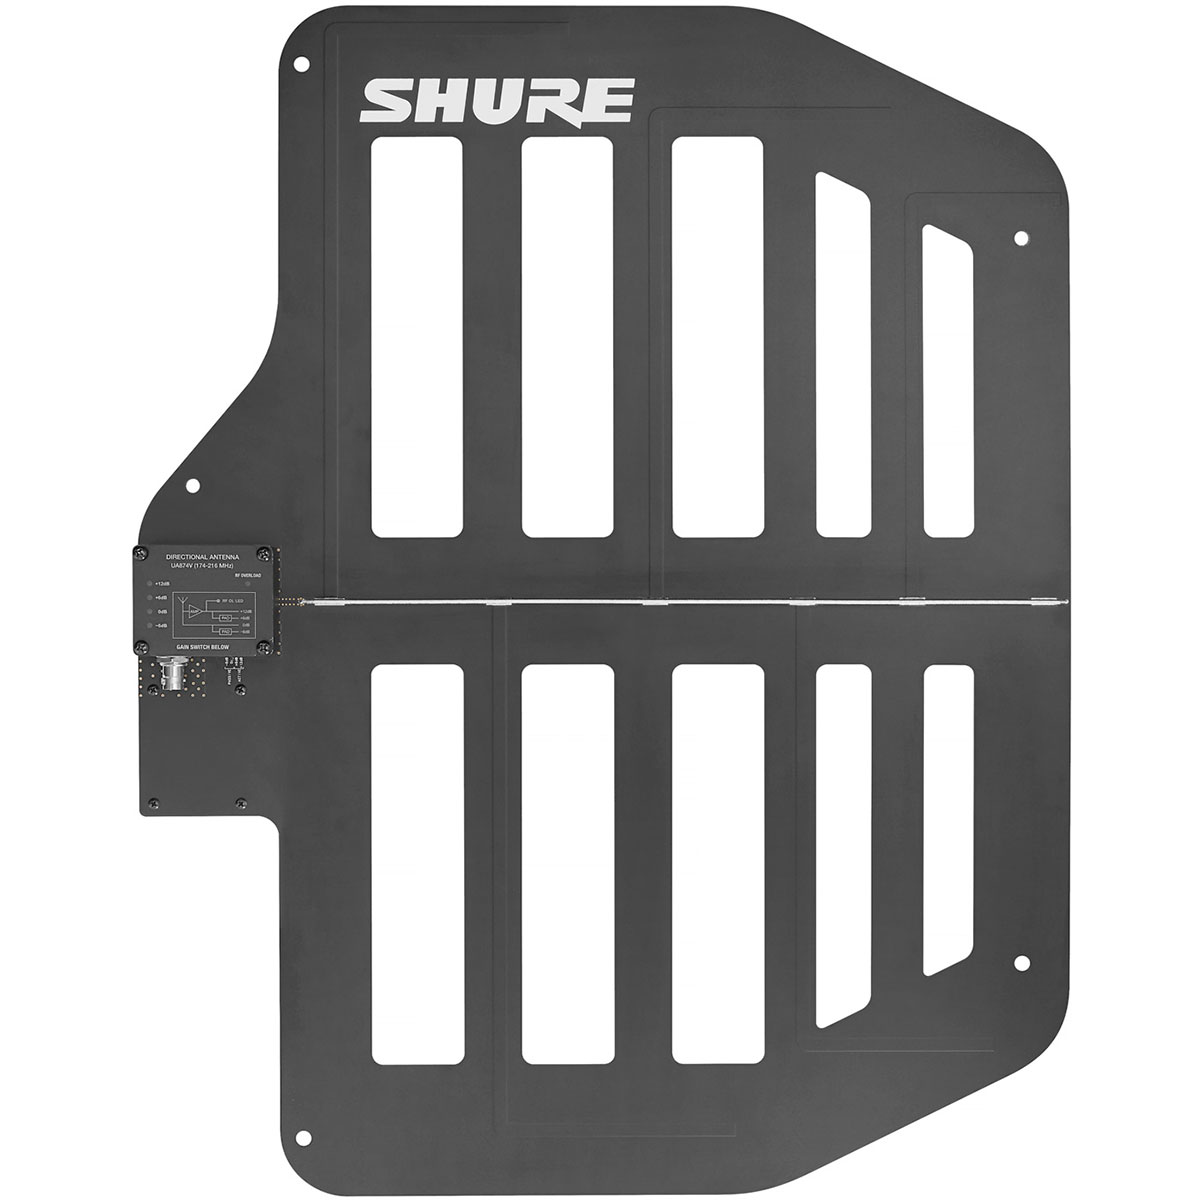 Shure Active Directional Antenna for QLX-D Wireless Systems (V50 Band)